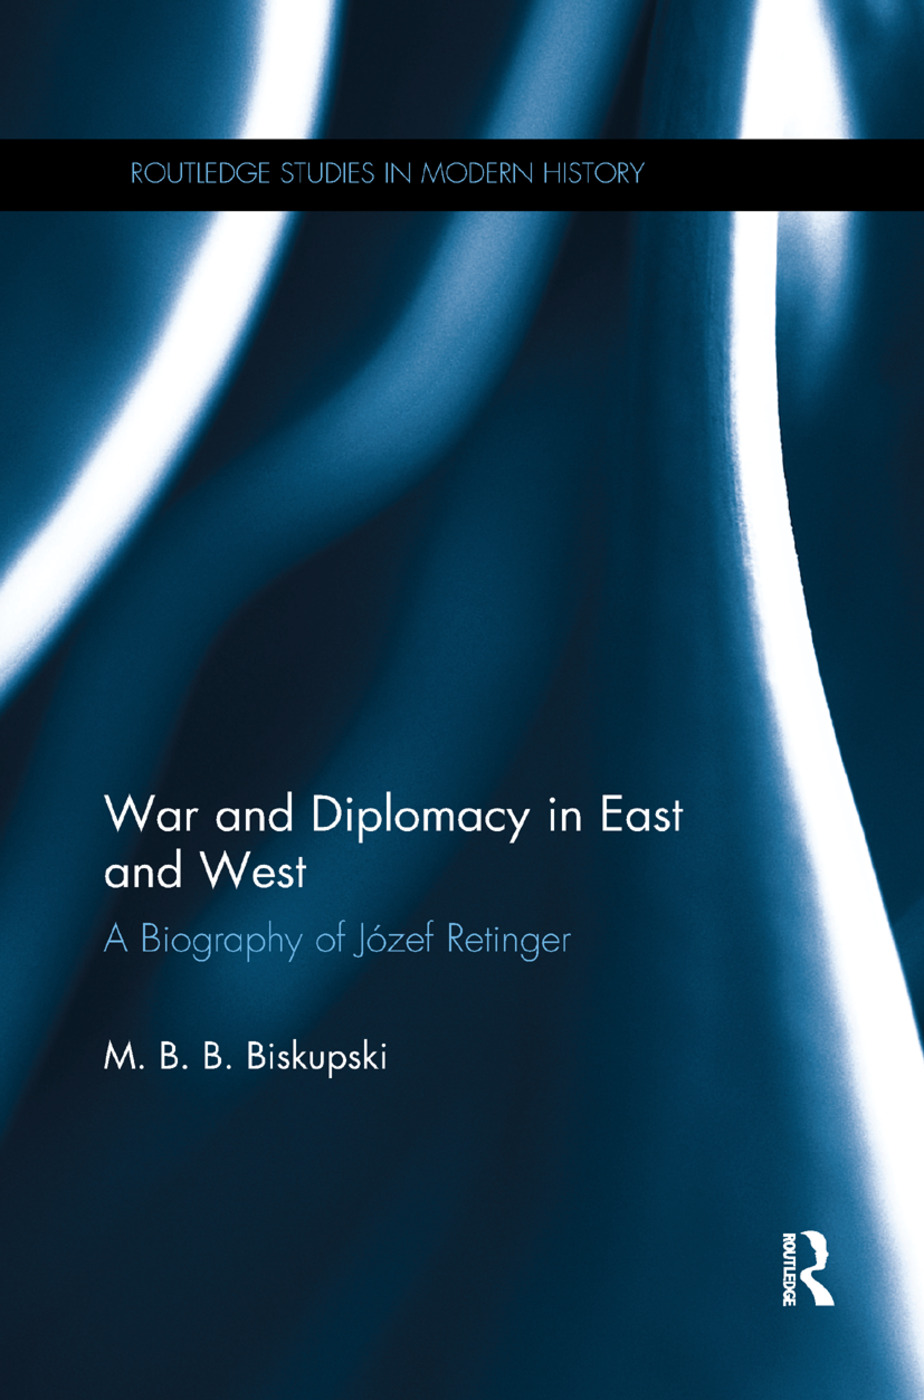 War and Diplomacy in East and West: A Biography of Józef Retinger book cover